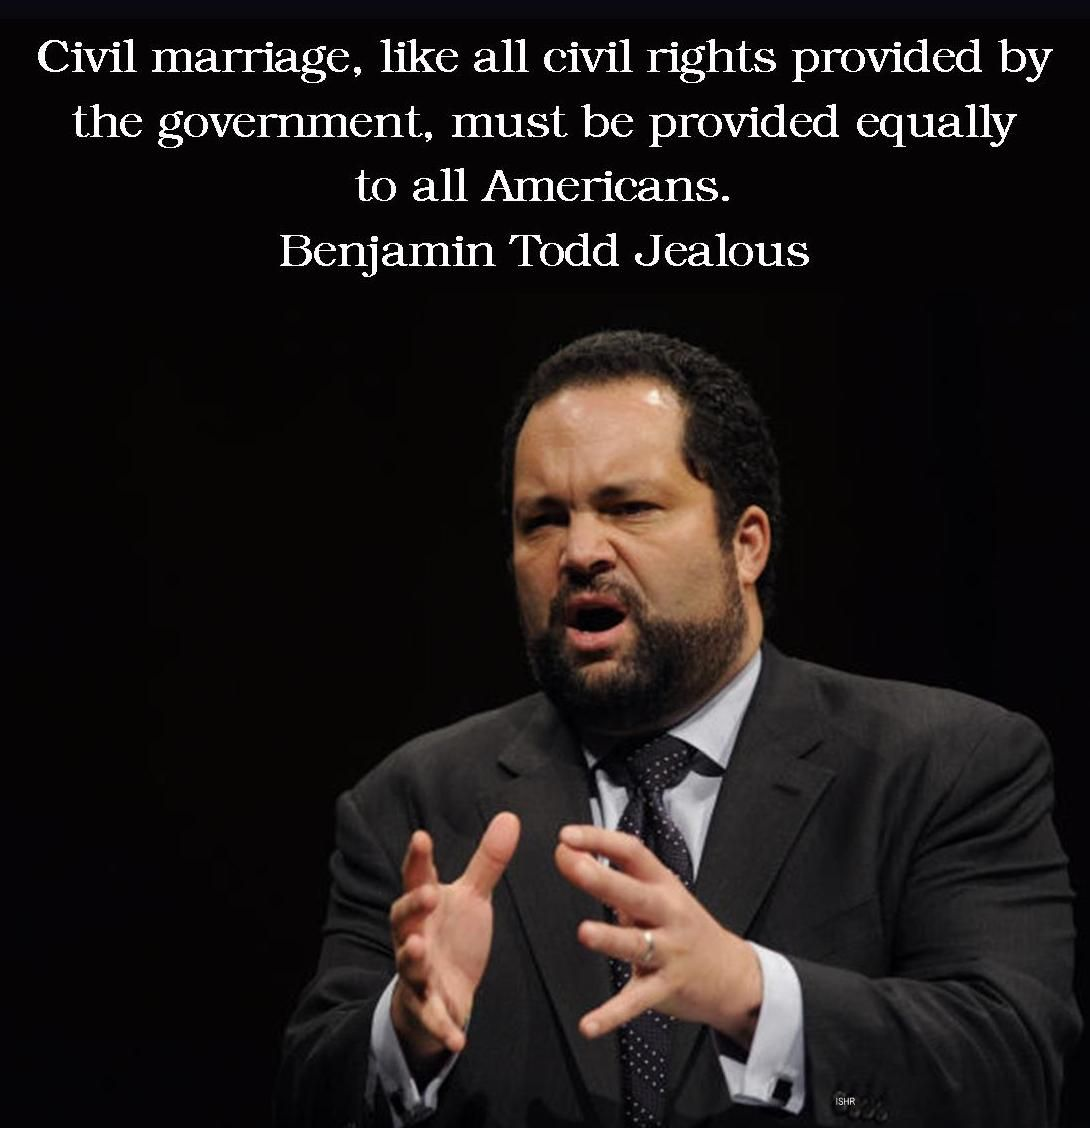 Civil Marriage Like All Civil Rights Provided By The Government Must Be Provided Equally To All Americans Benjam Human Rights Quotes Civil Rights Equality